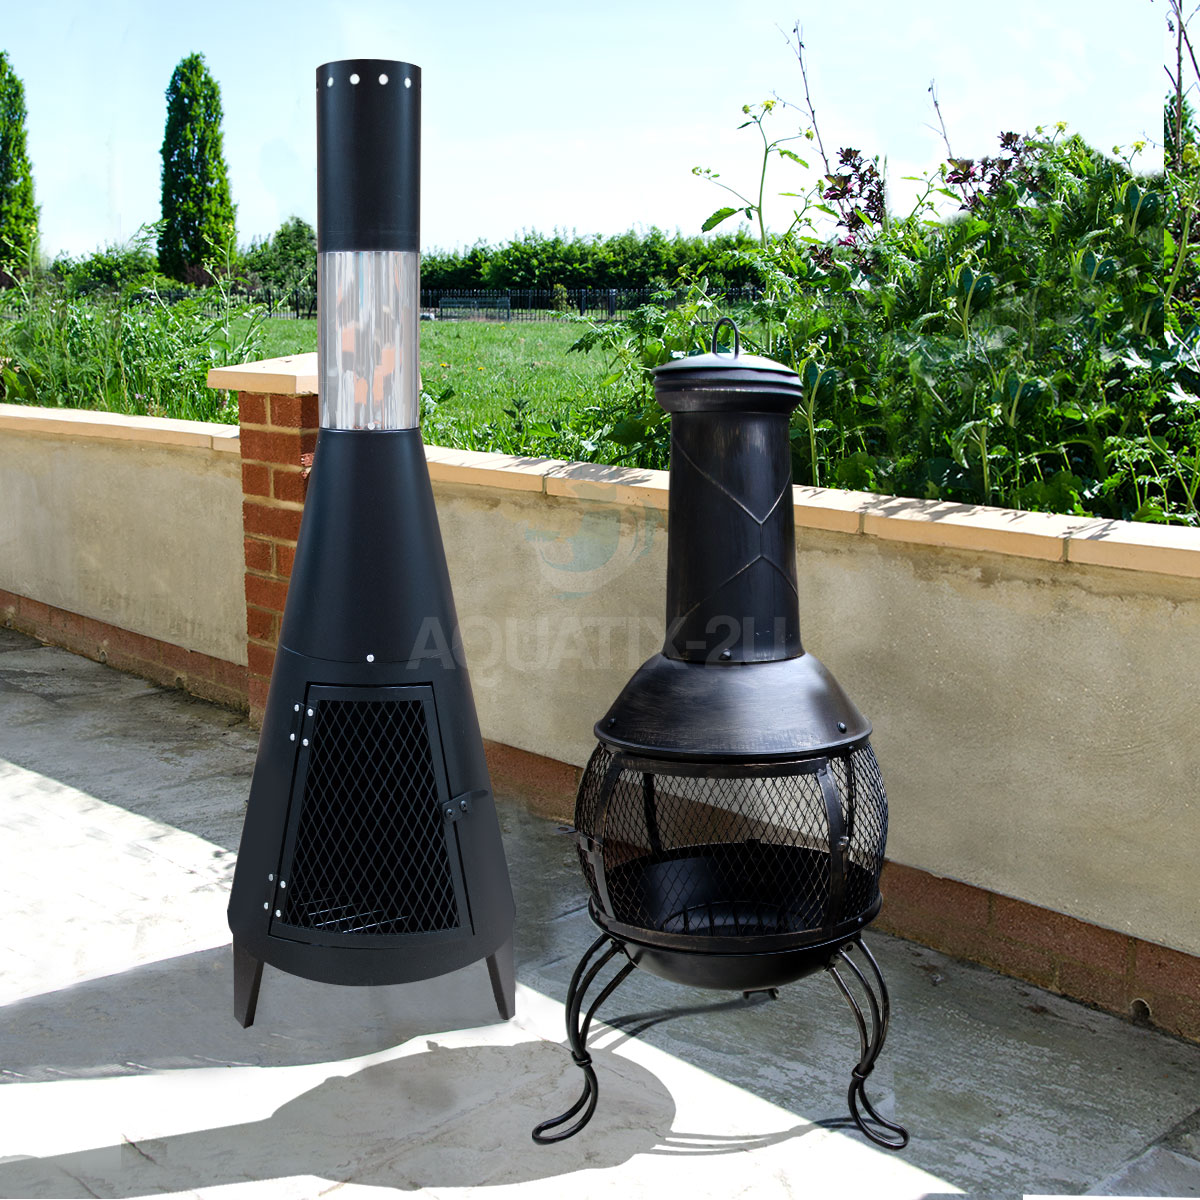 OUTDOOR CHIMINEA GARDEN PATIO LOG BURNER WOOD FIRE HEATER